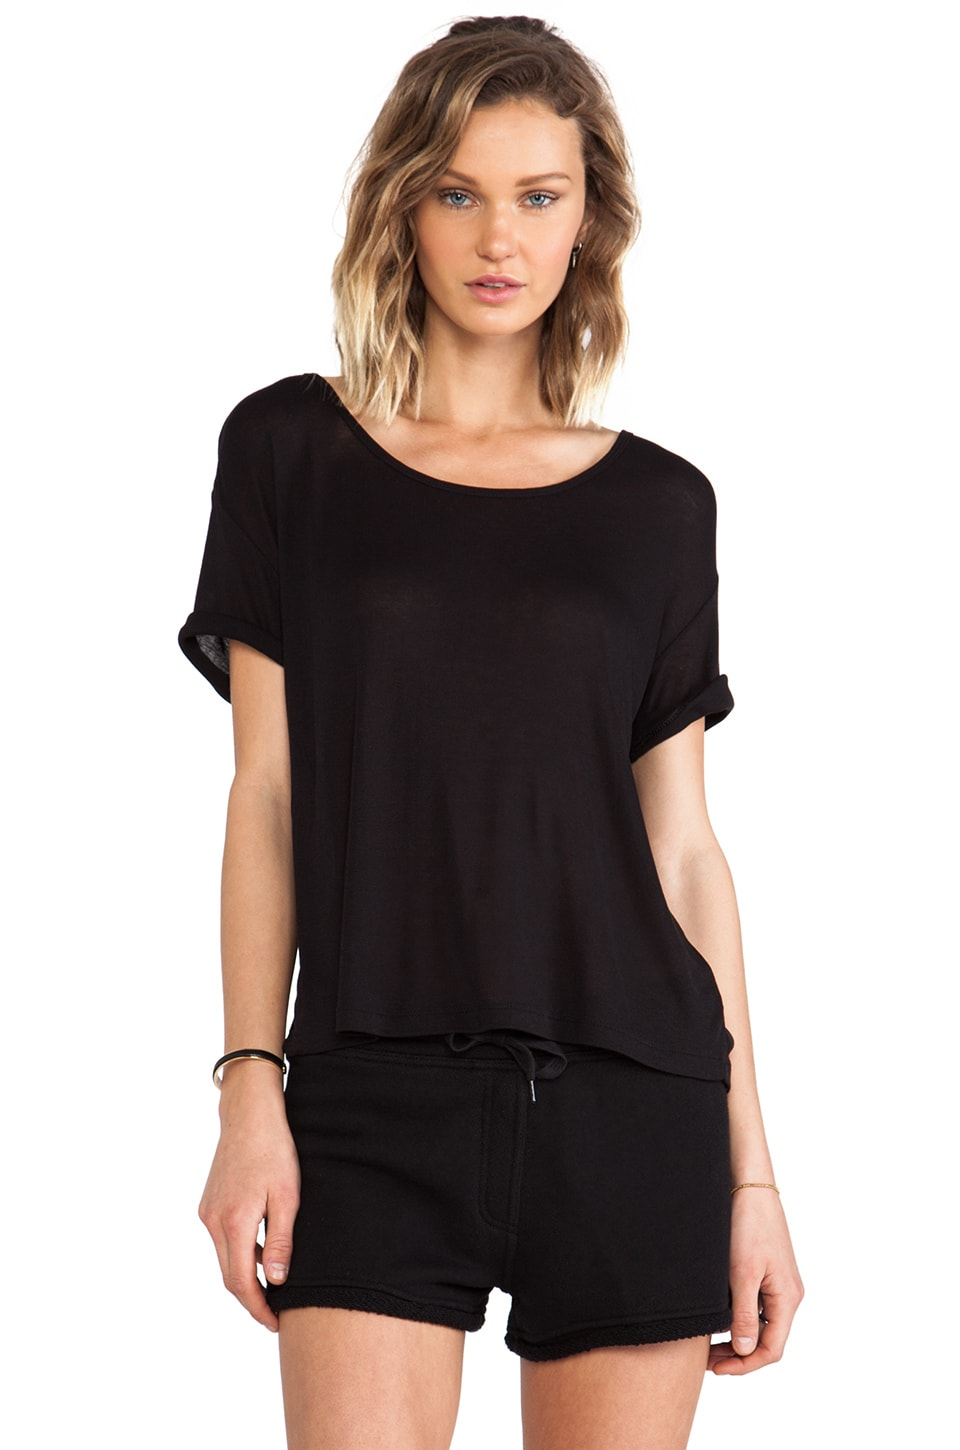 T by Alexander Wang Soft Melange Jersey Scoop Neck Tee in Black